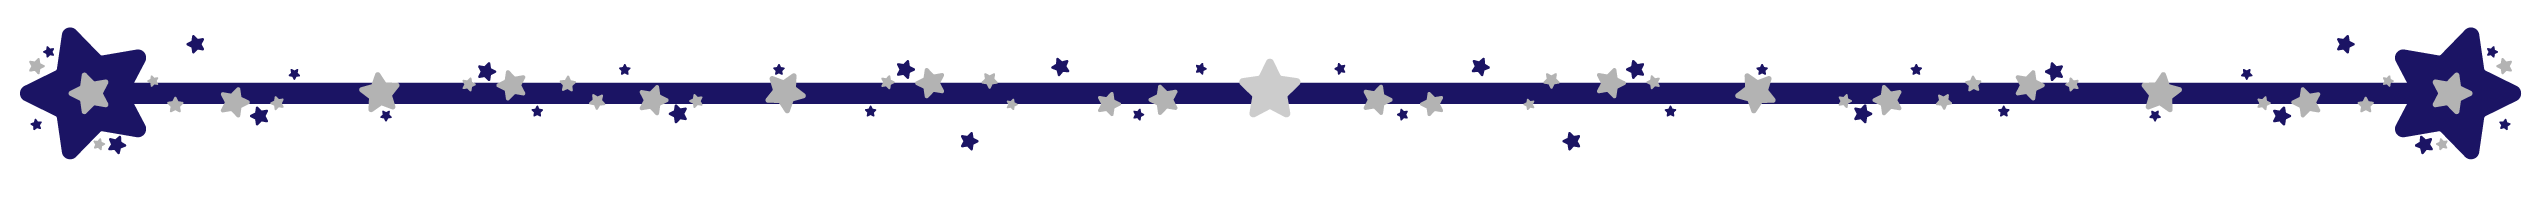 Navy_Silver_star_dividers-01.png